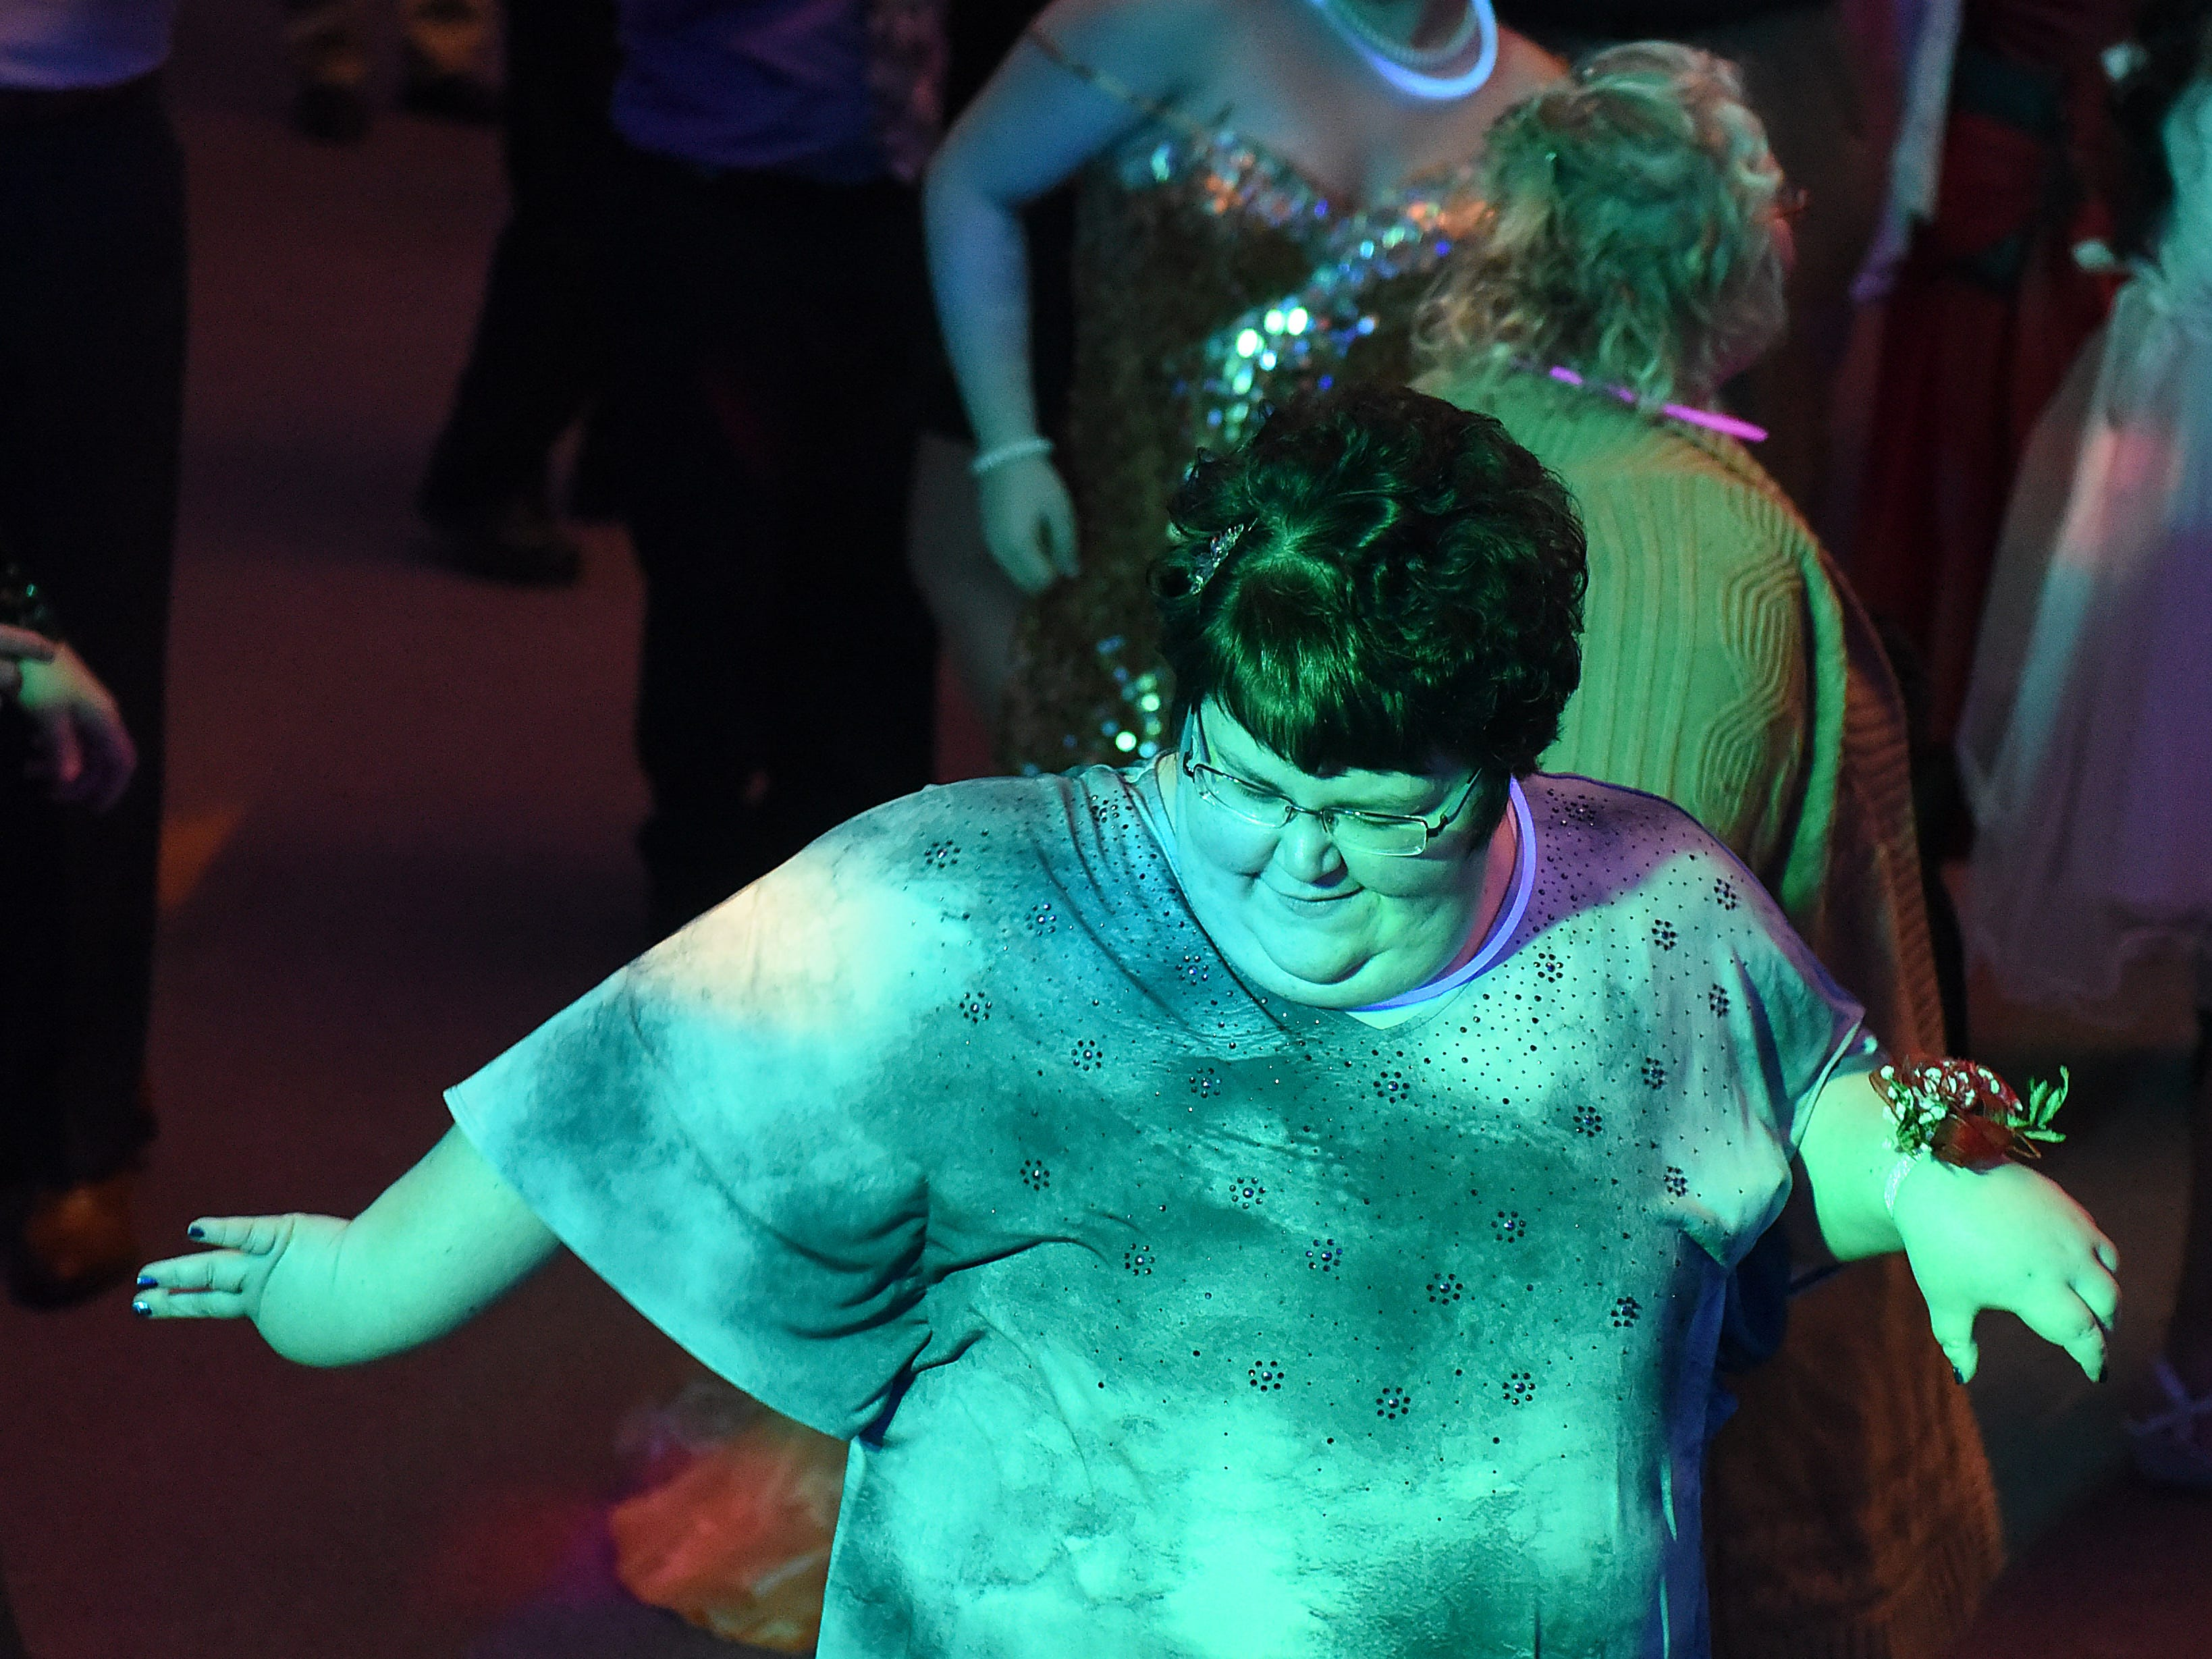 Halle Cough dances with other guests during the annual Night to Shine dance, sponsored by the Tim Tebow Foundation, on Friday, Feb. 8, 2019 at Community Church in Newark. Churches around the world hosted prom night experiences for guests with special needs. Over 200 guests with special needs enjoyed dinner, hair and makeup, karaoke, and a night of dancing. 655 churches around the world hosted similar events on Friday according to the Tim Tebow Foundation.